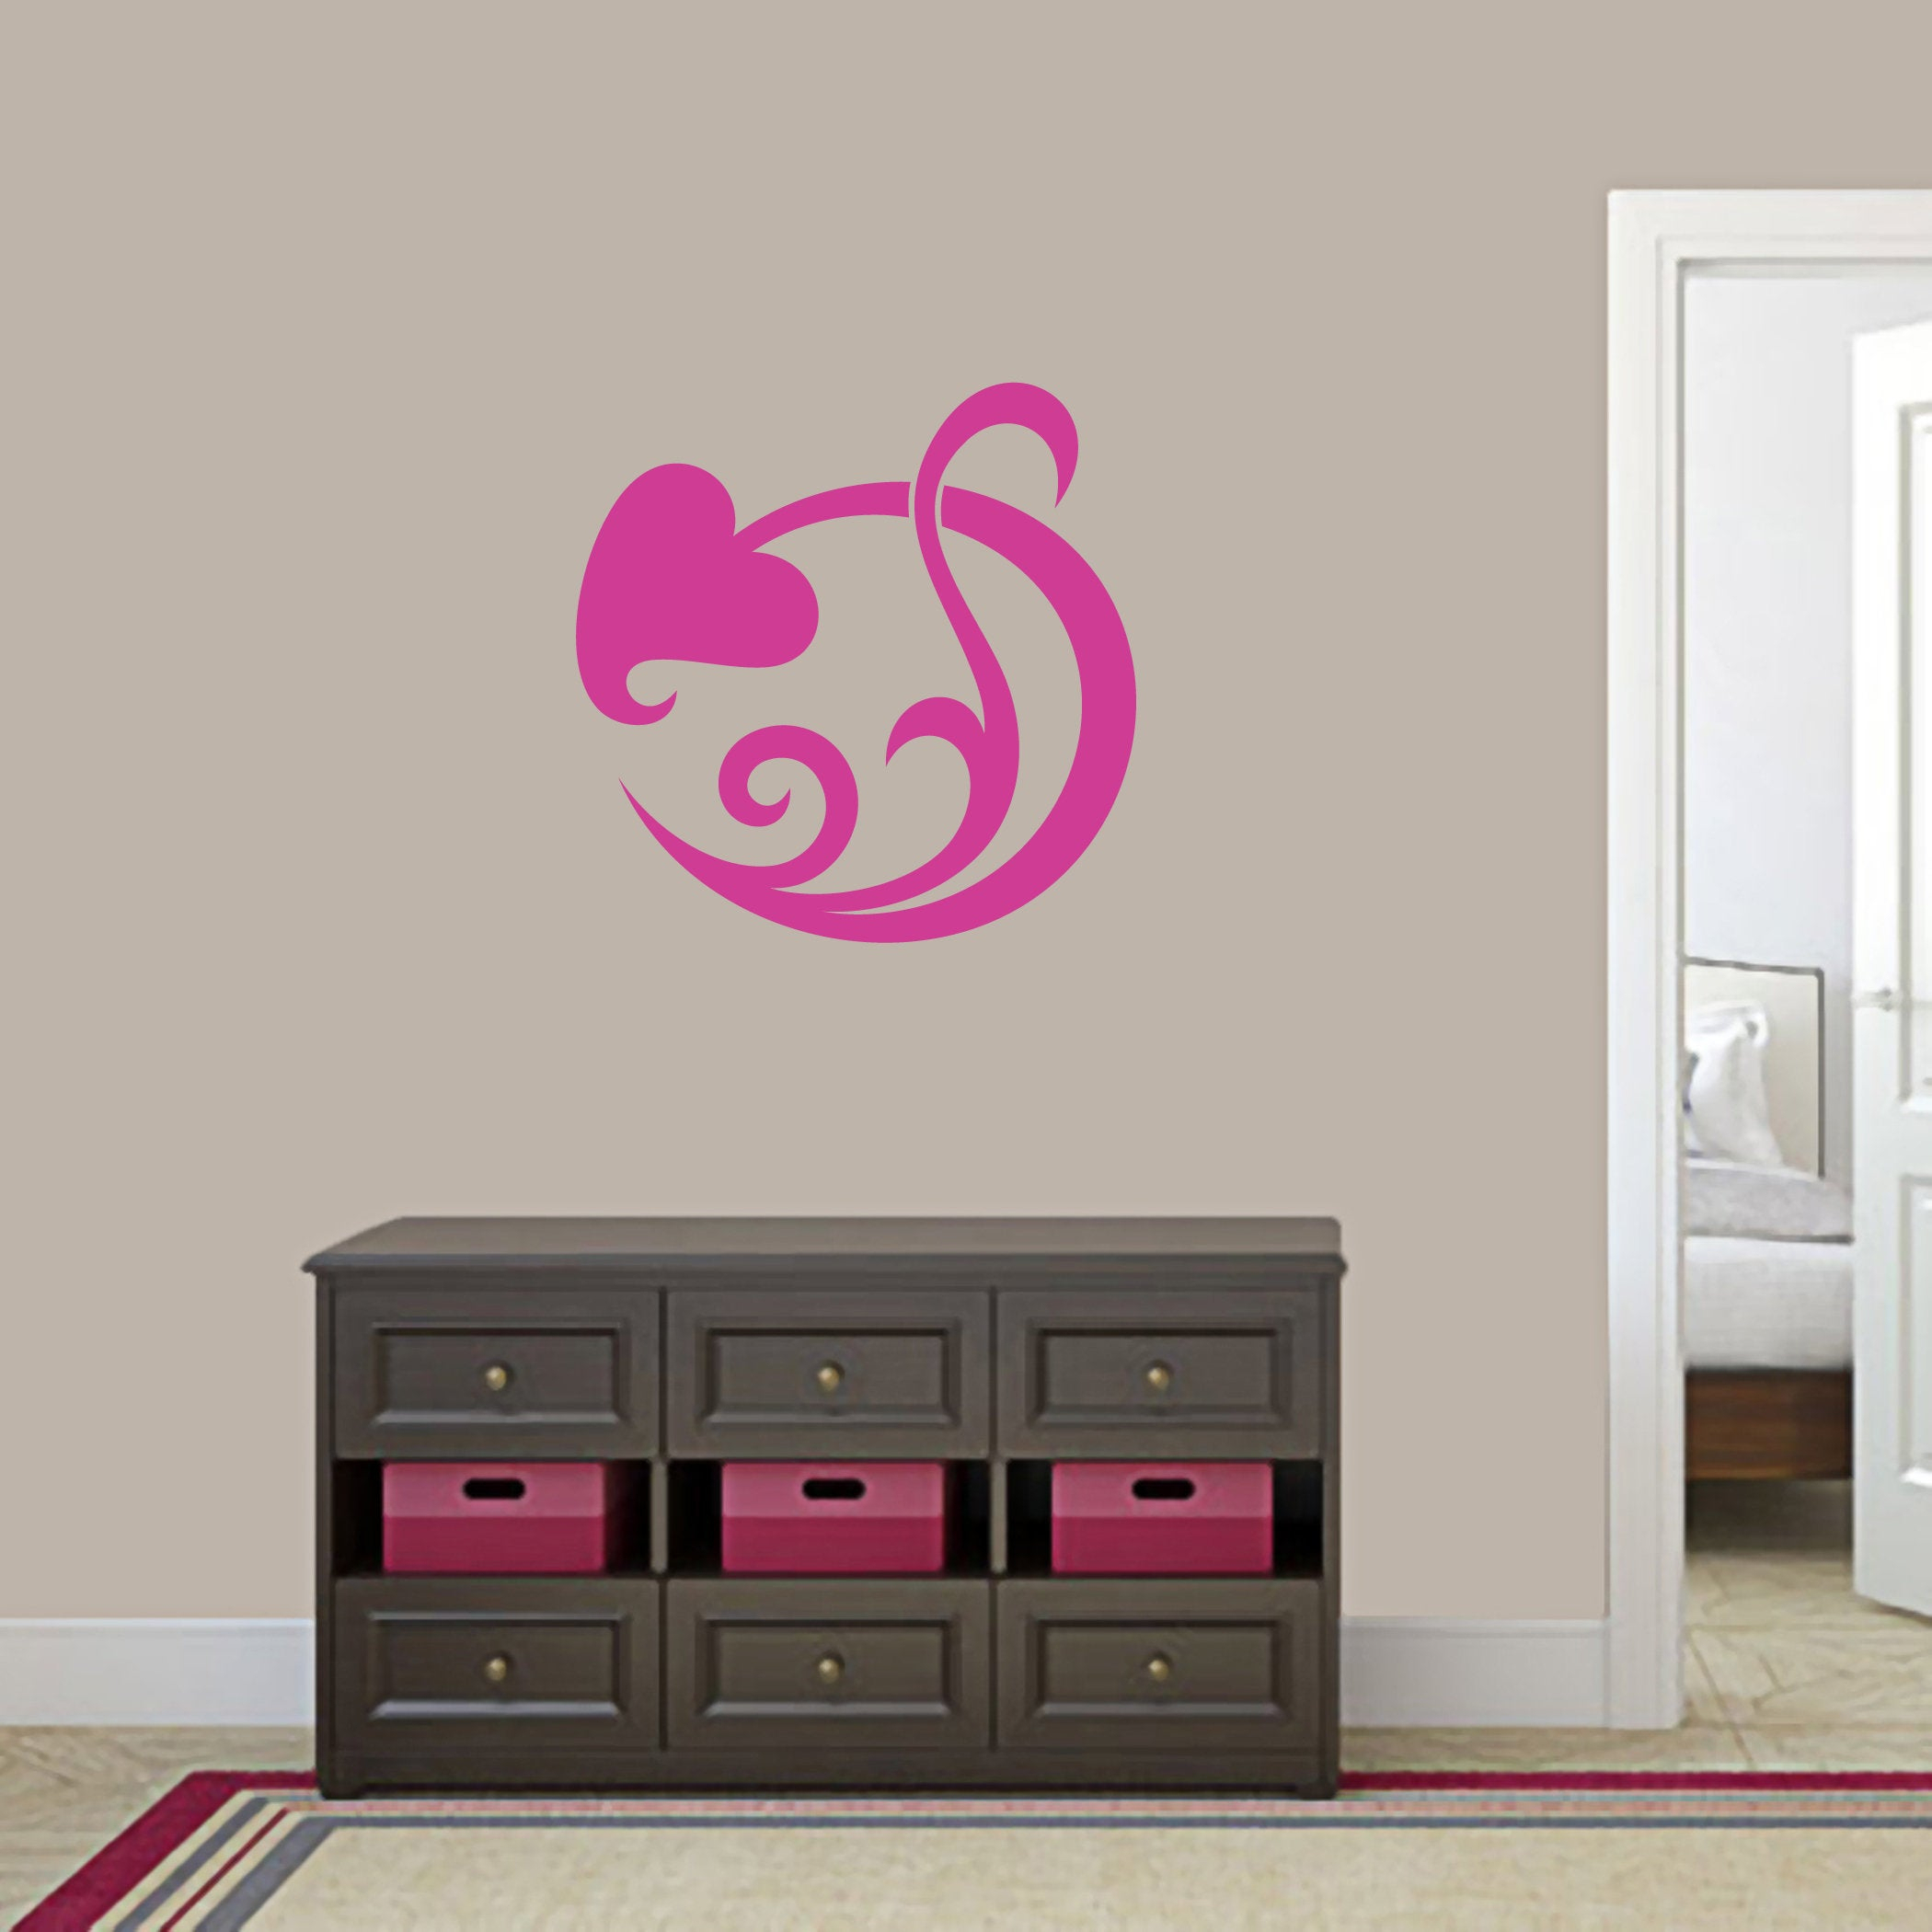 Circle Leaf Scroll Wall Decal // Flowers And Shapes // Entryway // Kids Room // Nursery // Wall Decor // Wall Sticker // Vinyl Wall Decal Intended For Scroll Leaf Wall Decor (View 13 of 30)